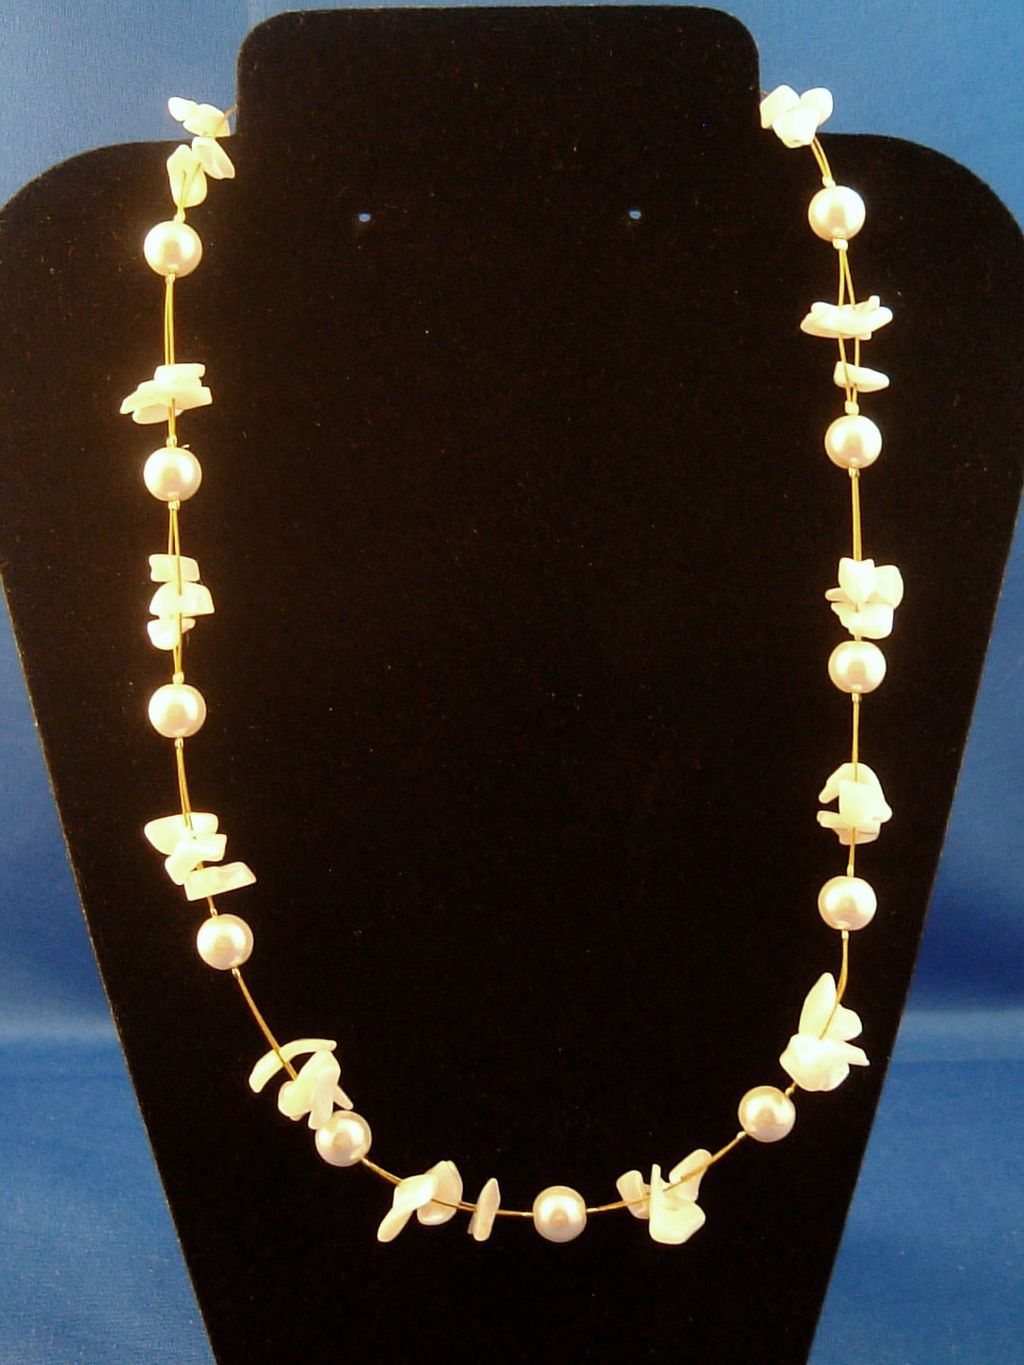 Snow White Necklace, Two Layers of Genuine Shells & Artificial Pearls, Fashion European Jewelry